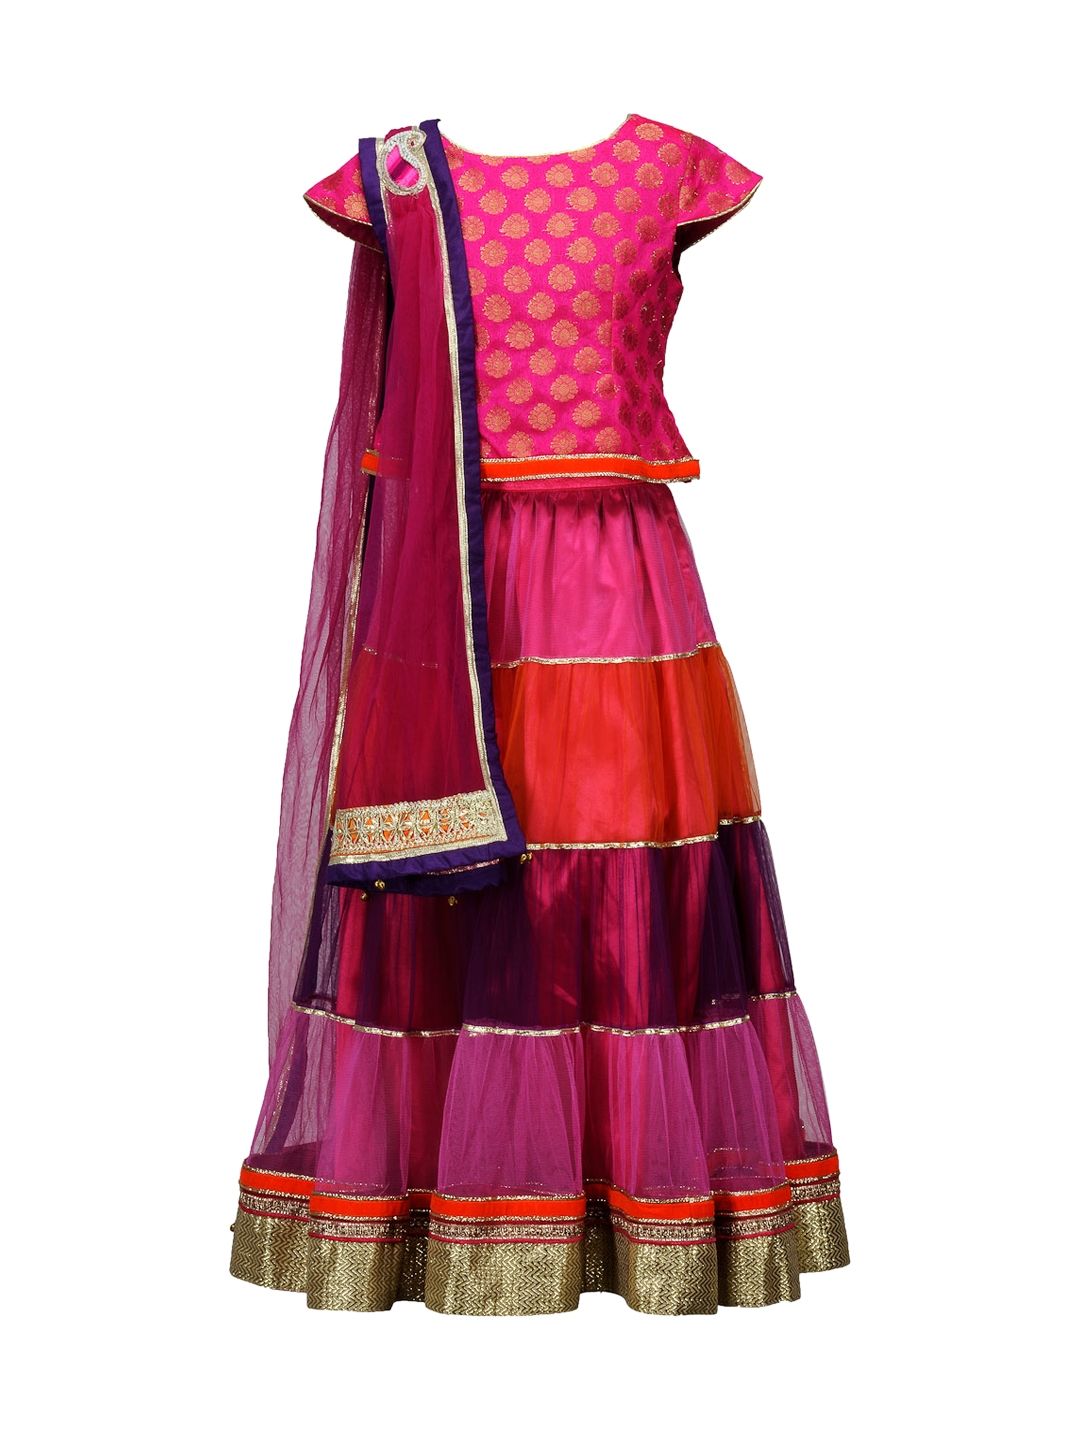 73be7e1d54bd97 Buy Peaches Girls Pink Lehenga Choli With Dupatta - Lehenga Choli ...